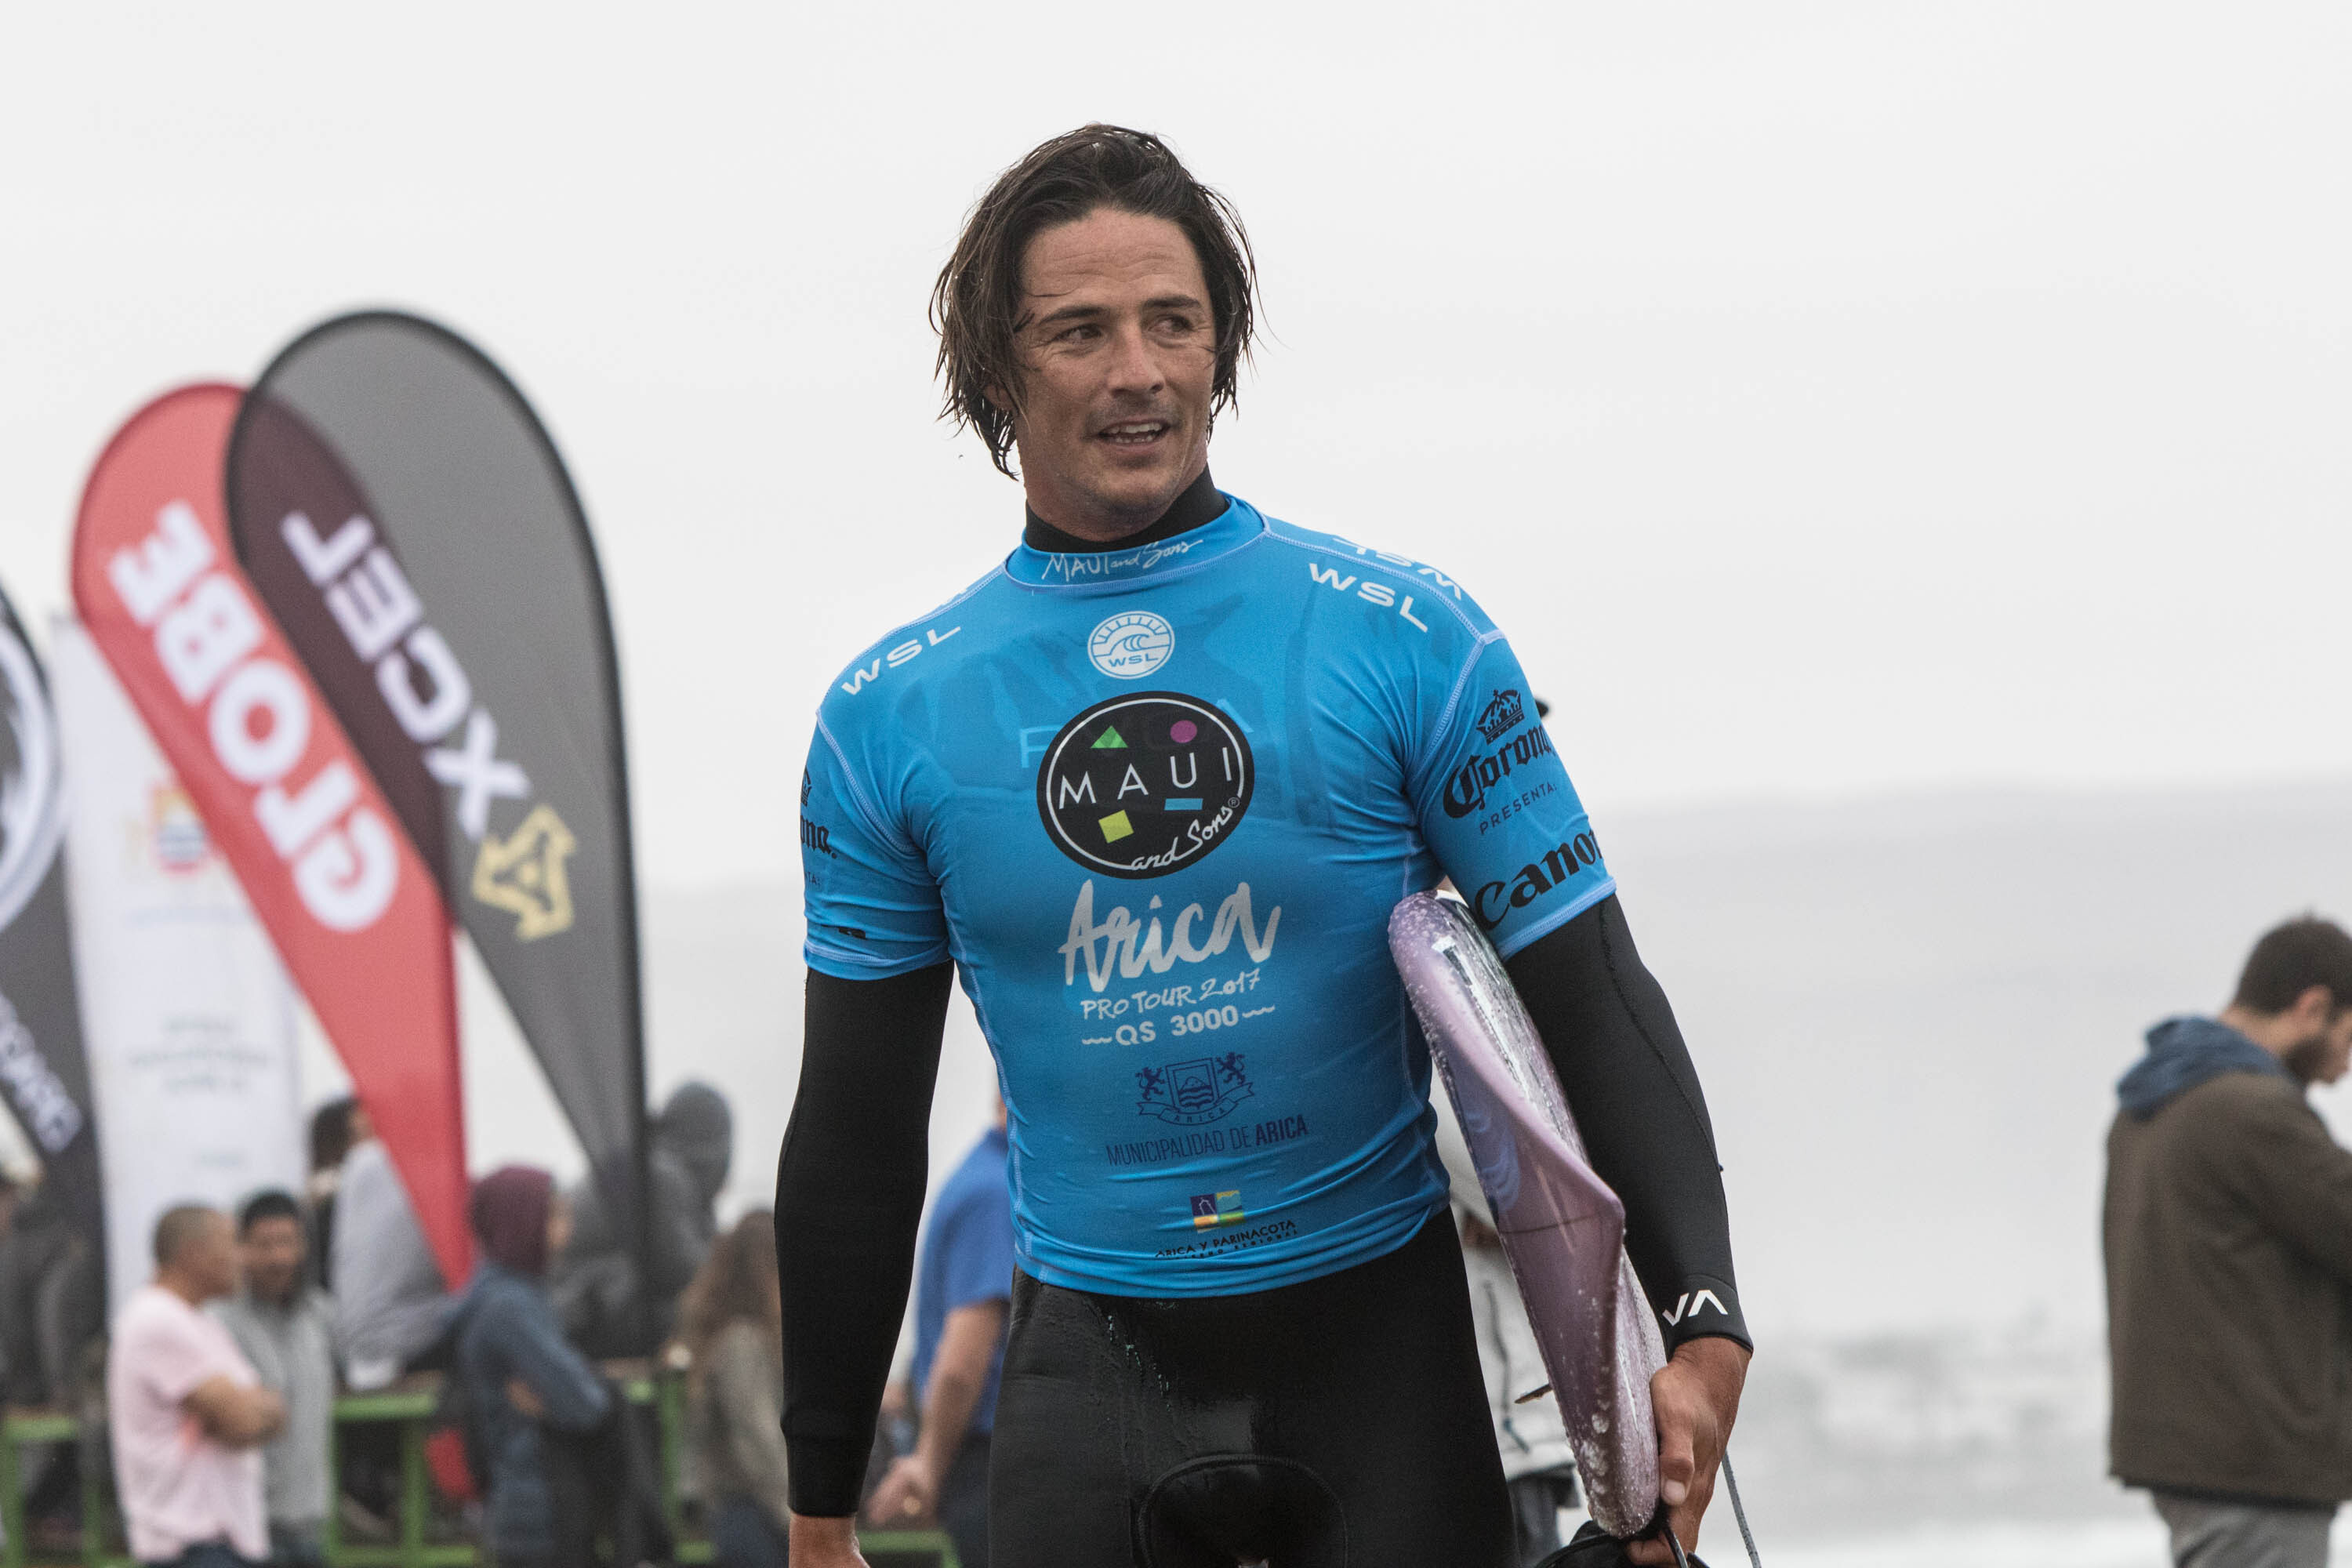 Danny Fuller - Maui and Sons Arica Pro Tour